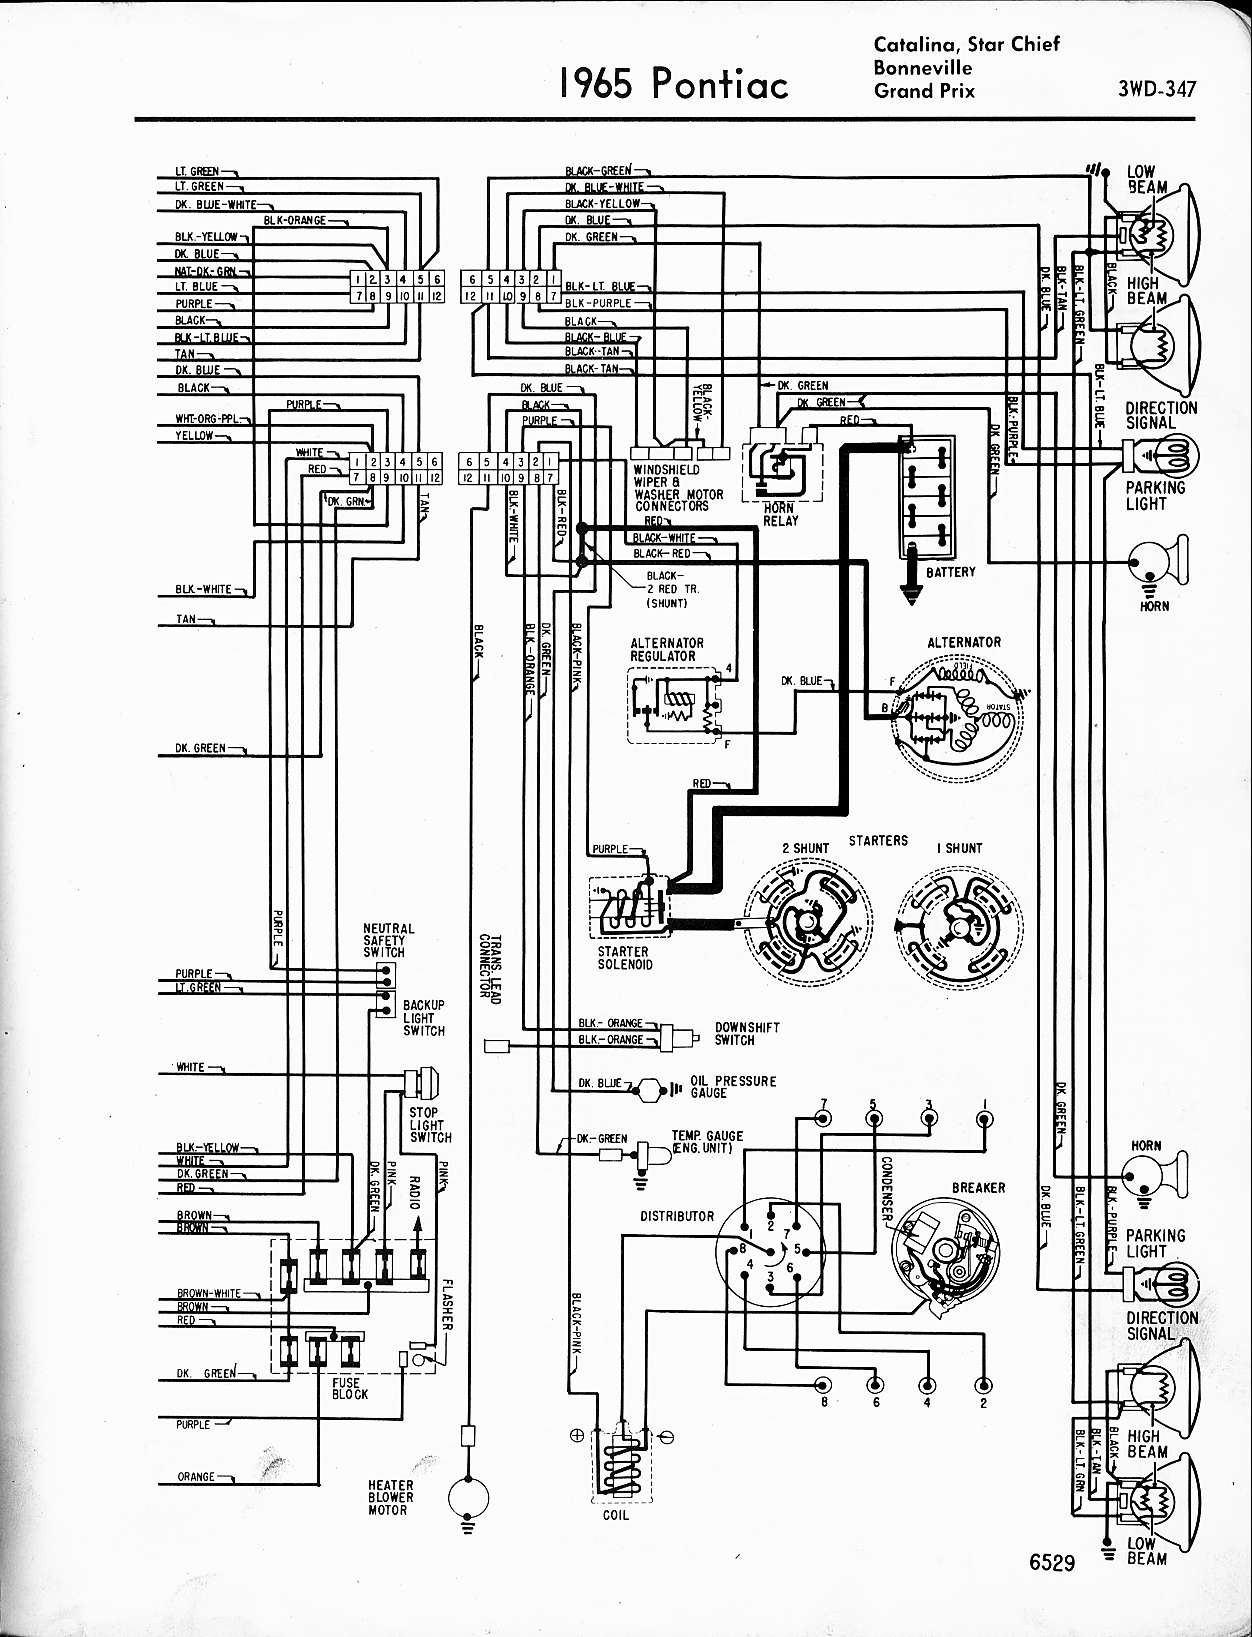 MWire5765 347 i am trying to reconnect the radio in my restored 1964 pontiac 1964 GTO Dome Light Wiring Diagram at alyssarenee.co